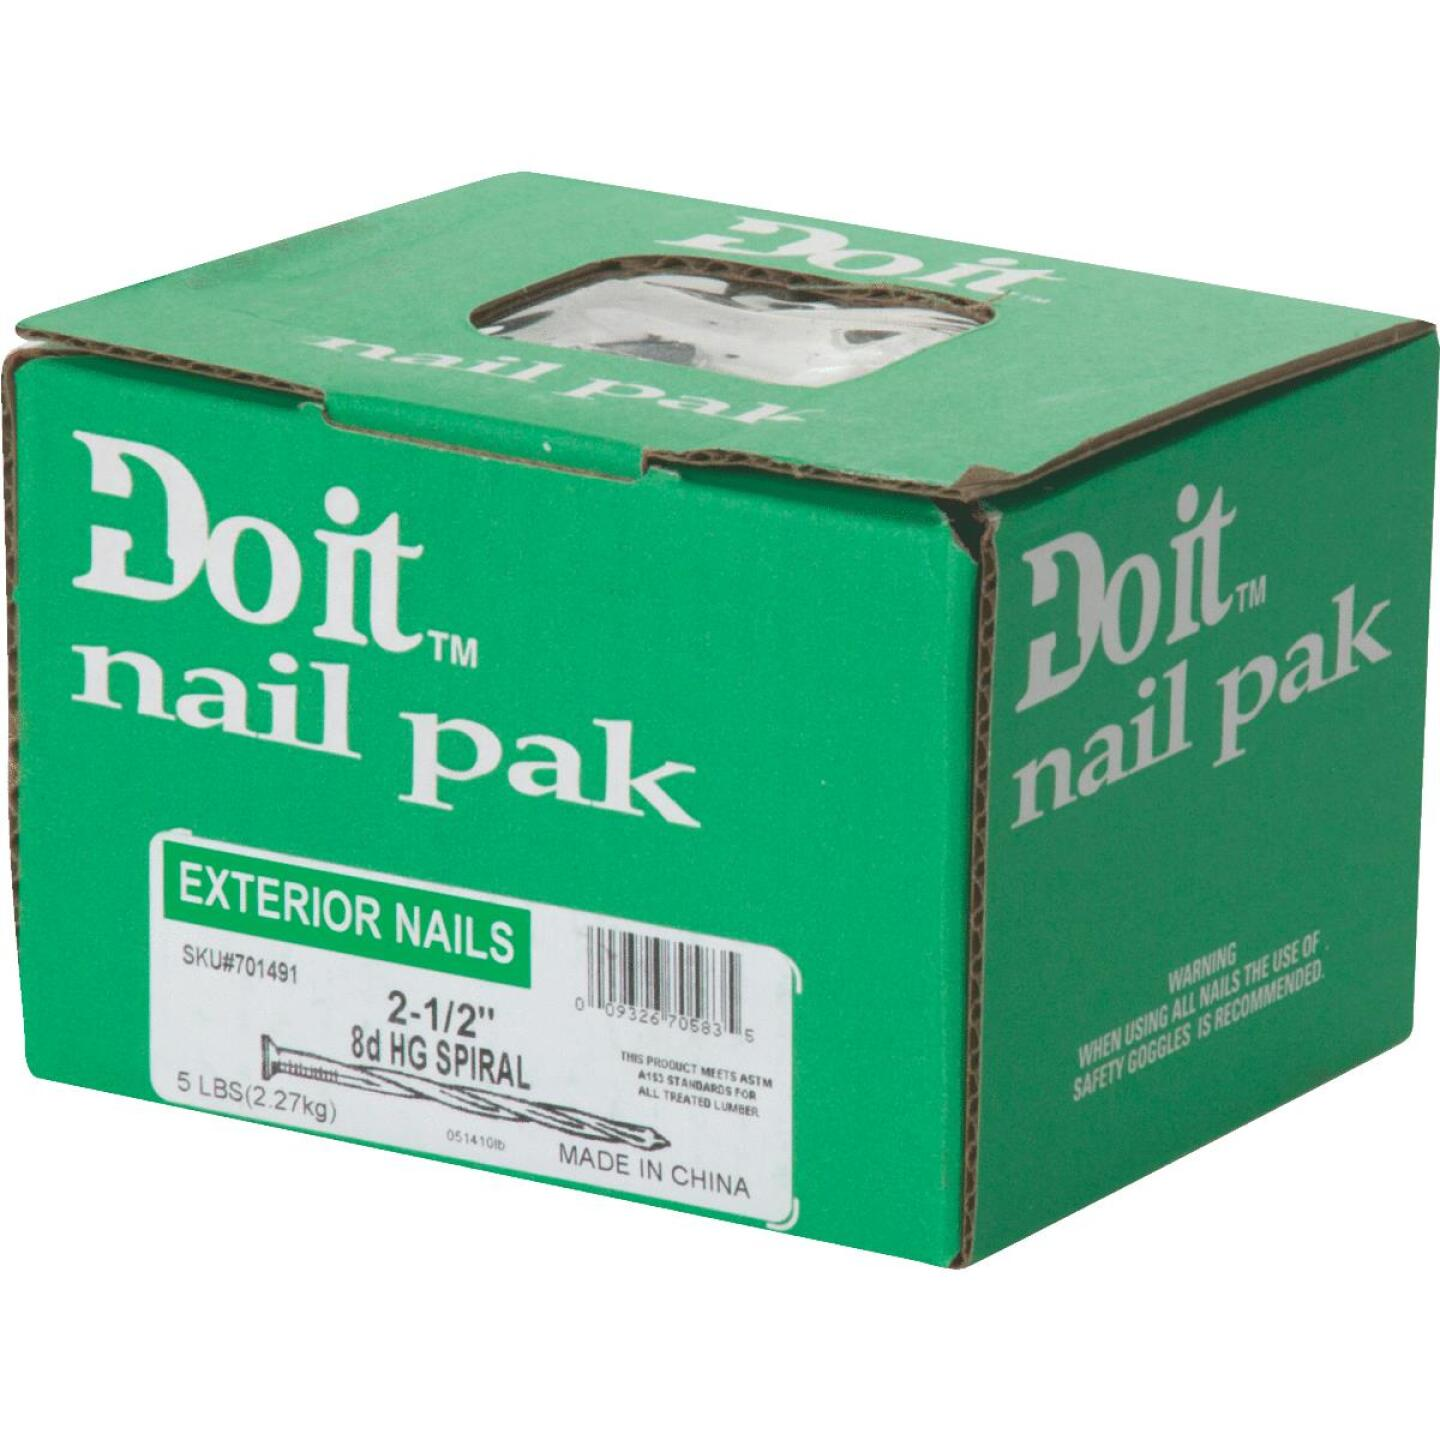 Do it 8d x 2-1/2 In. 11 ga Hot Galvanized Deck Nails (530 Ct., 5 Lb.) Image 2